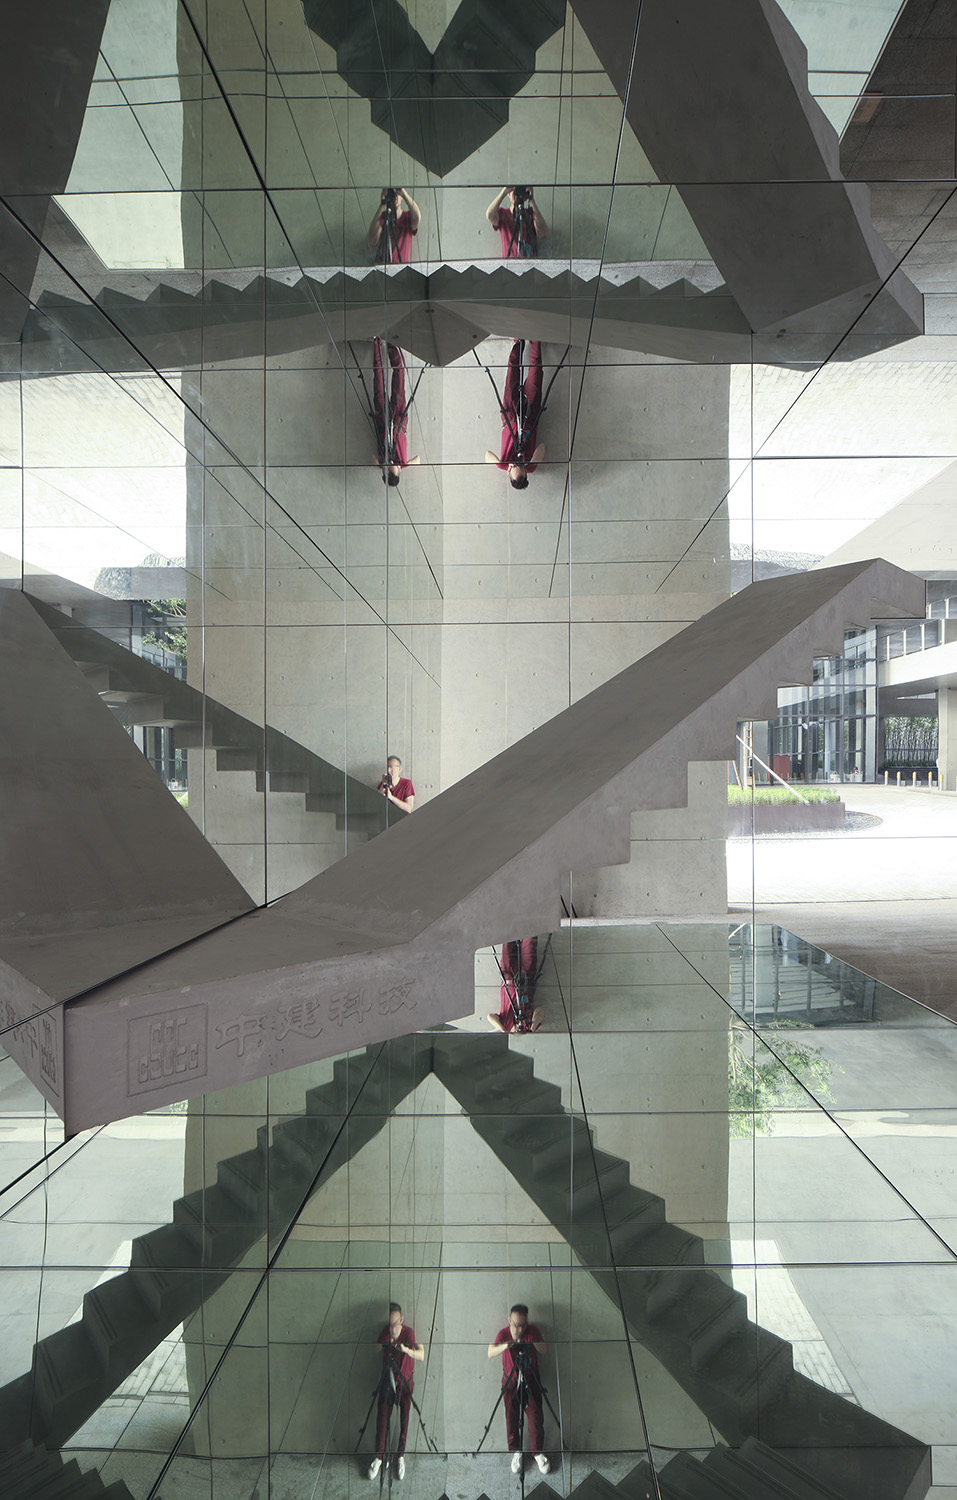 staircase and its reflection DONG Hao